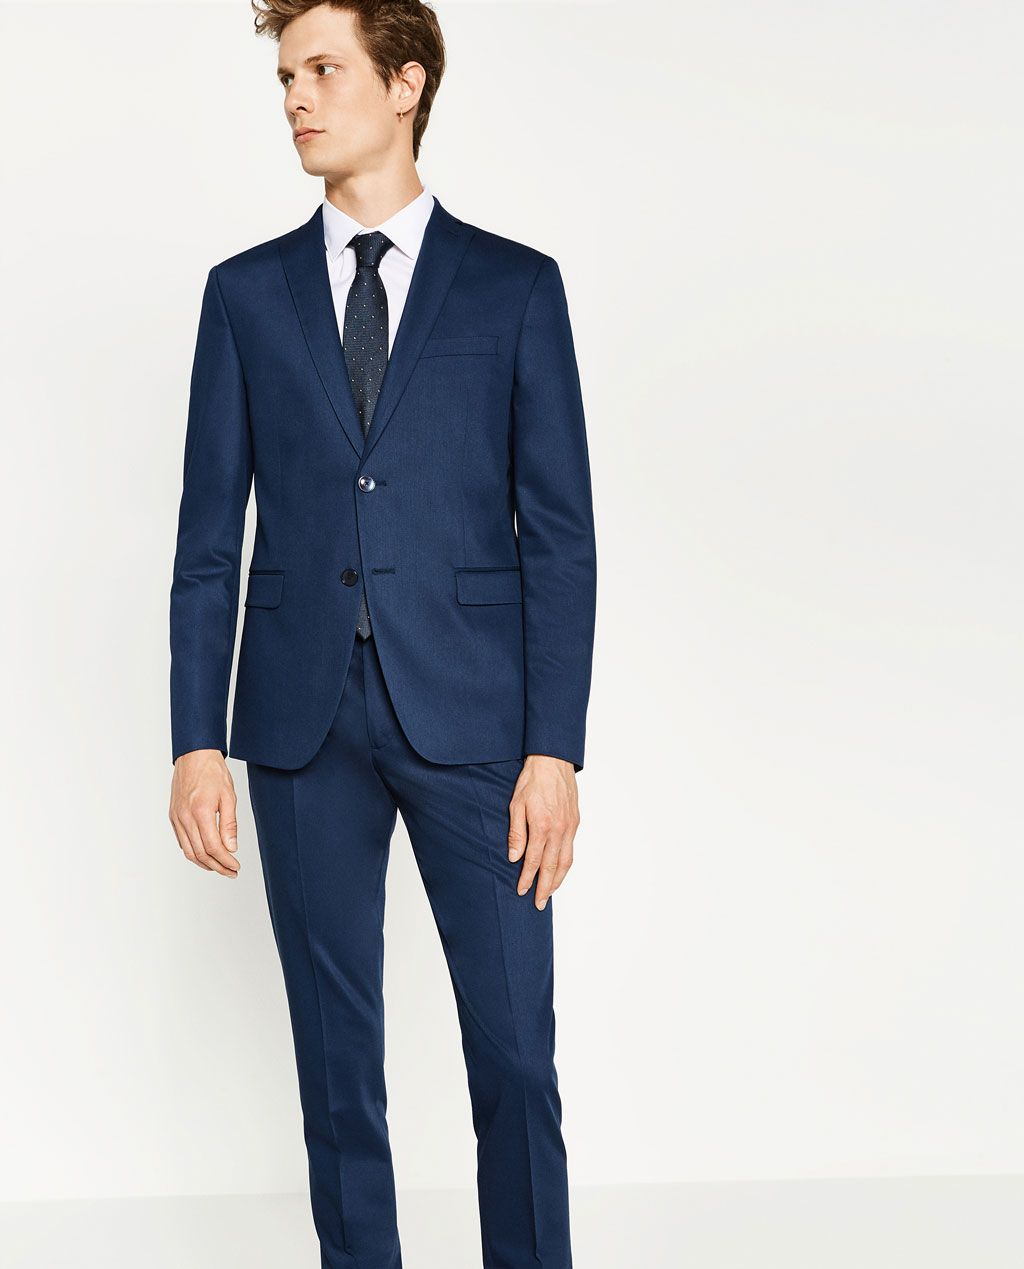 d8486b99fb CHINTZ SUIT-SUITS-MAN-COLLECTION AW16 | ZARA Thailand | LUGGAGE ...